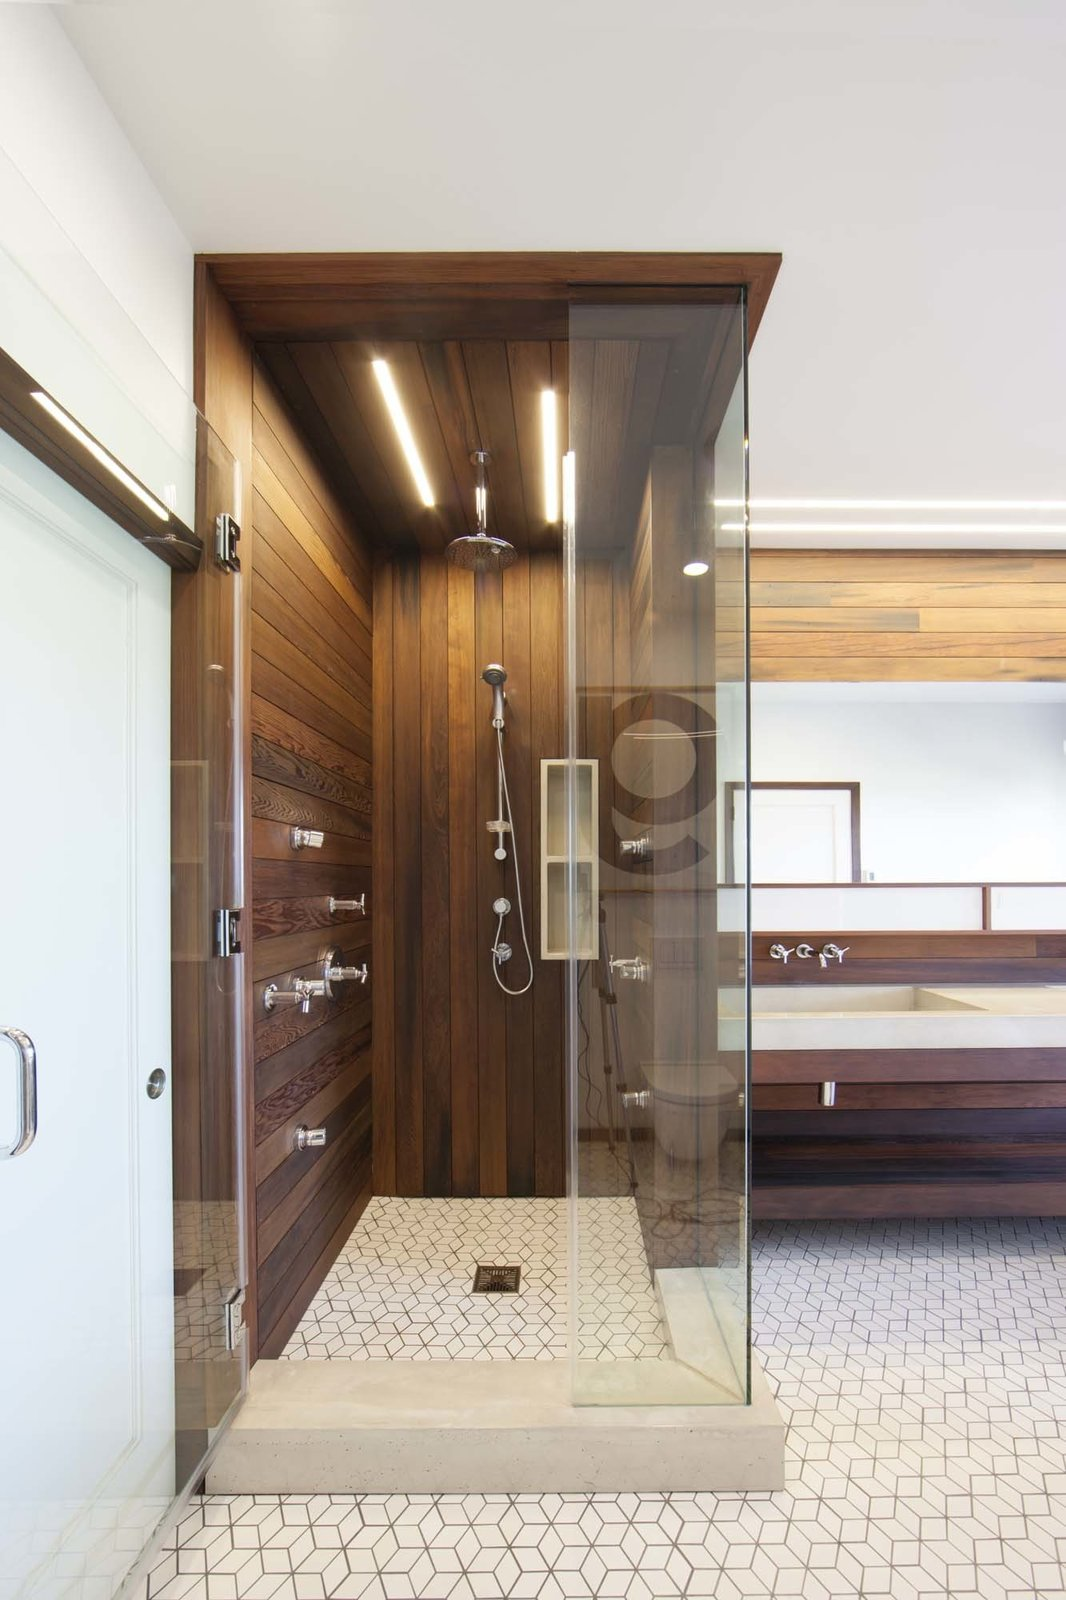 Lighting in the bathroom is provided by San Francisco-based Aion LED's modular fixture system. The linear lighting mimics the redwood siding. Tagged: Bath Room and Enclosed Shower.  Photo 10 of 10 in 10 Best Modern Showers to Inspire Your Bathroom Renovation from Warm Wood Modern Bathroom Renovation in San Francisco